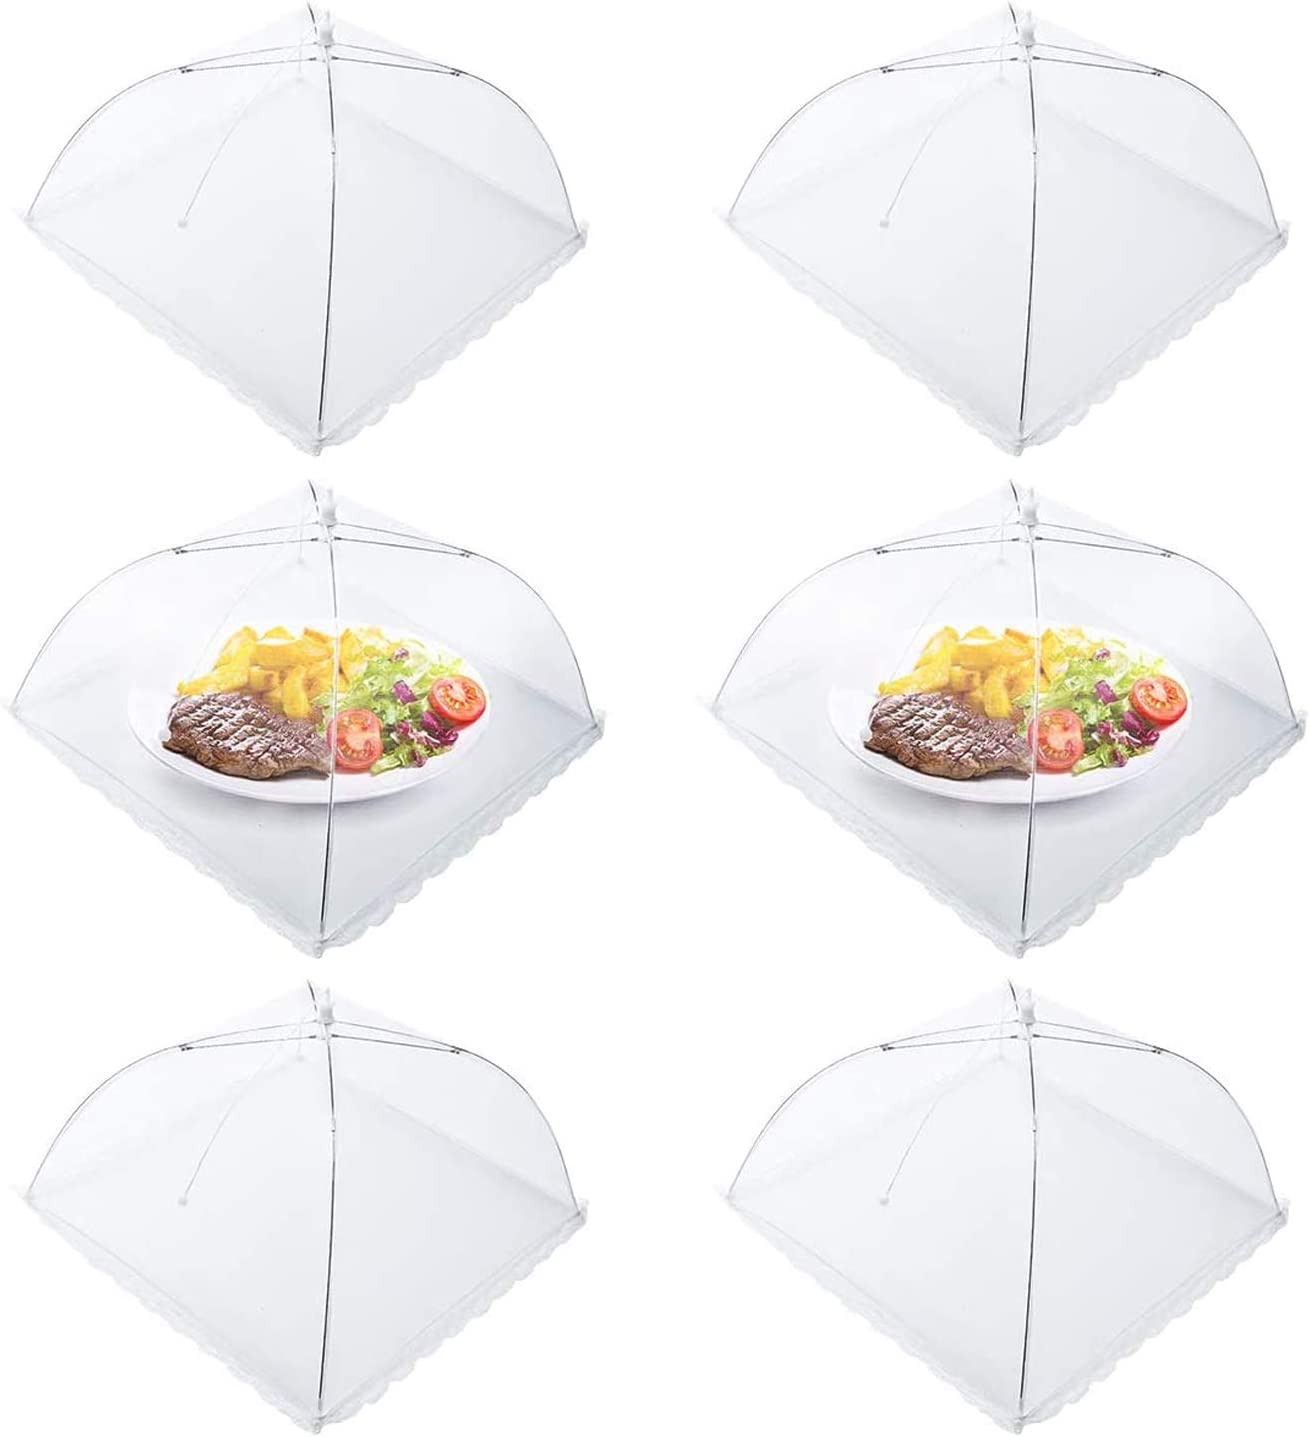 Homealexa Mesh Food Nets Fruit Cover Net 6 Pack, 17 Inch Large and Strong Collapsible Mesh Cake Covers Net, Mesh Food Covers Umbrella for Keeping Out Flies Bugs Mosquitos Food Cover Net